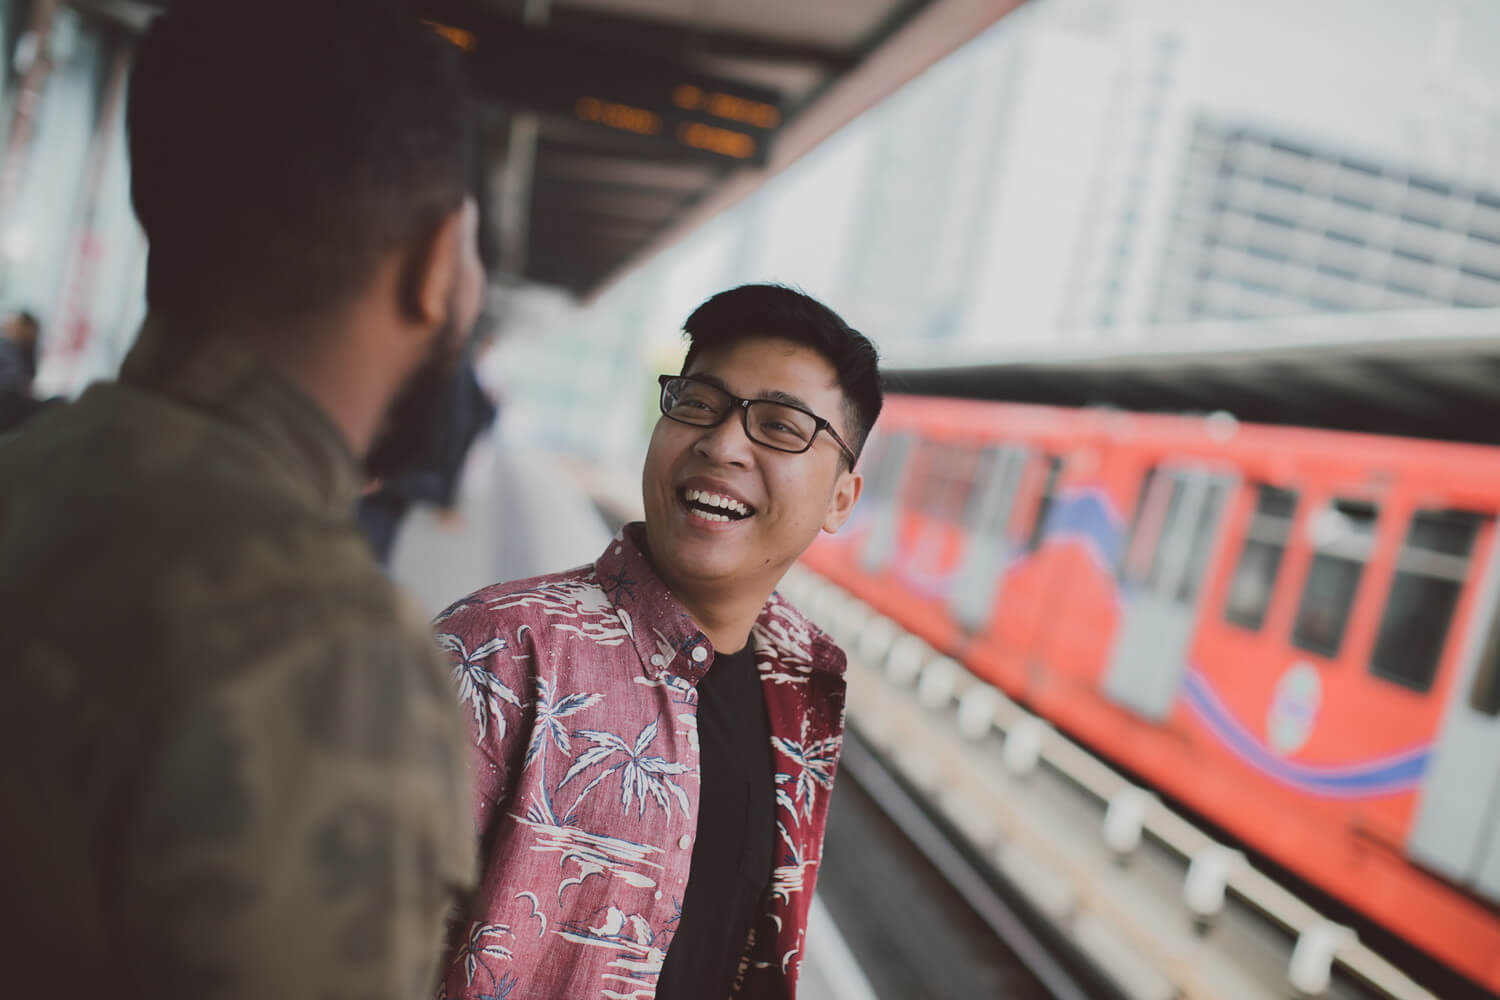 Two London students at the DLR